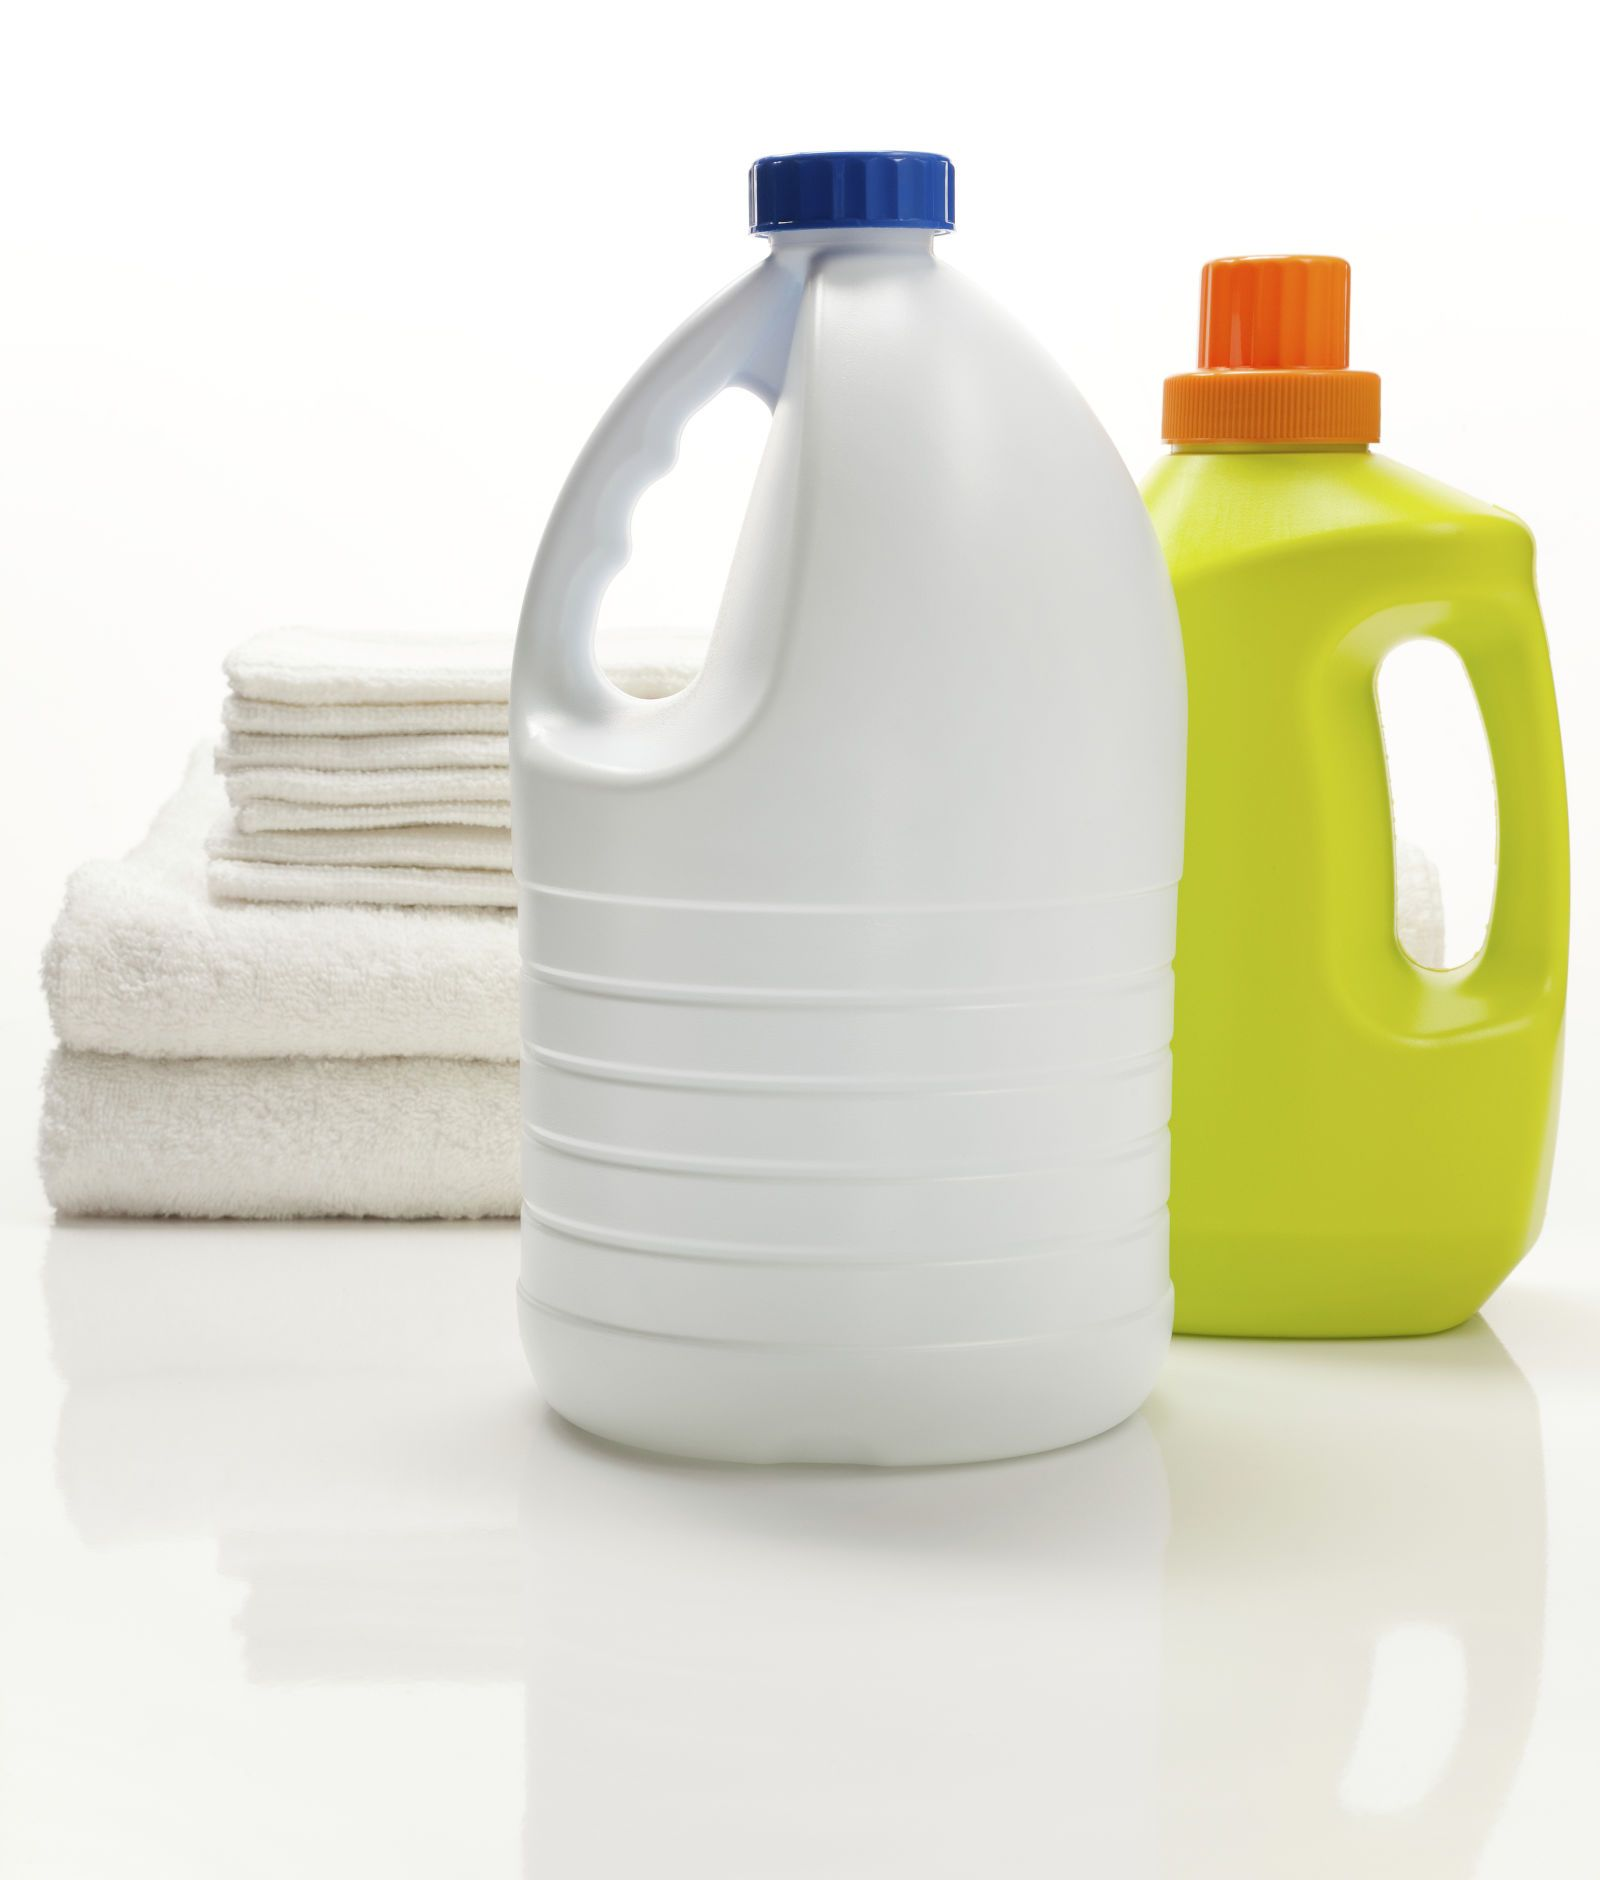 6 Cleaning Mistakes That Could Ruin Your Stuff DIY